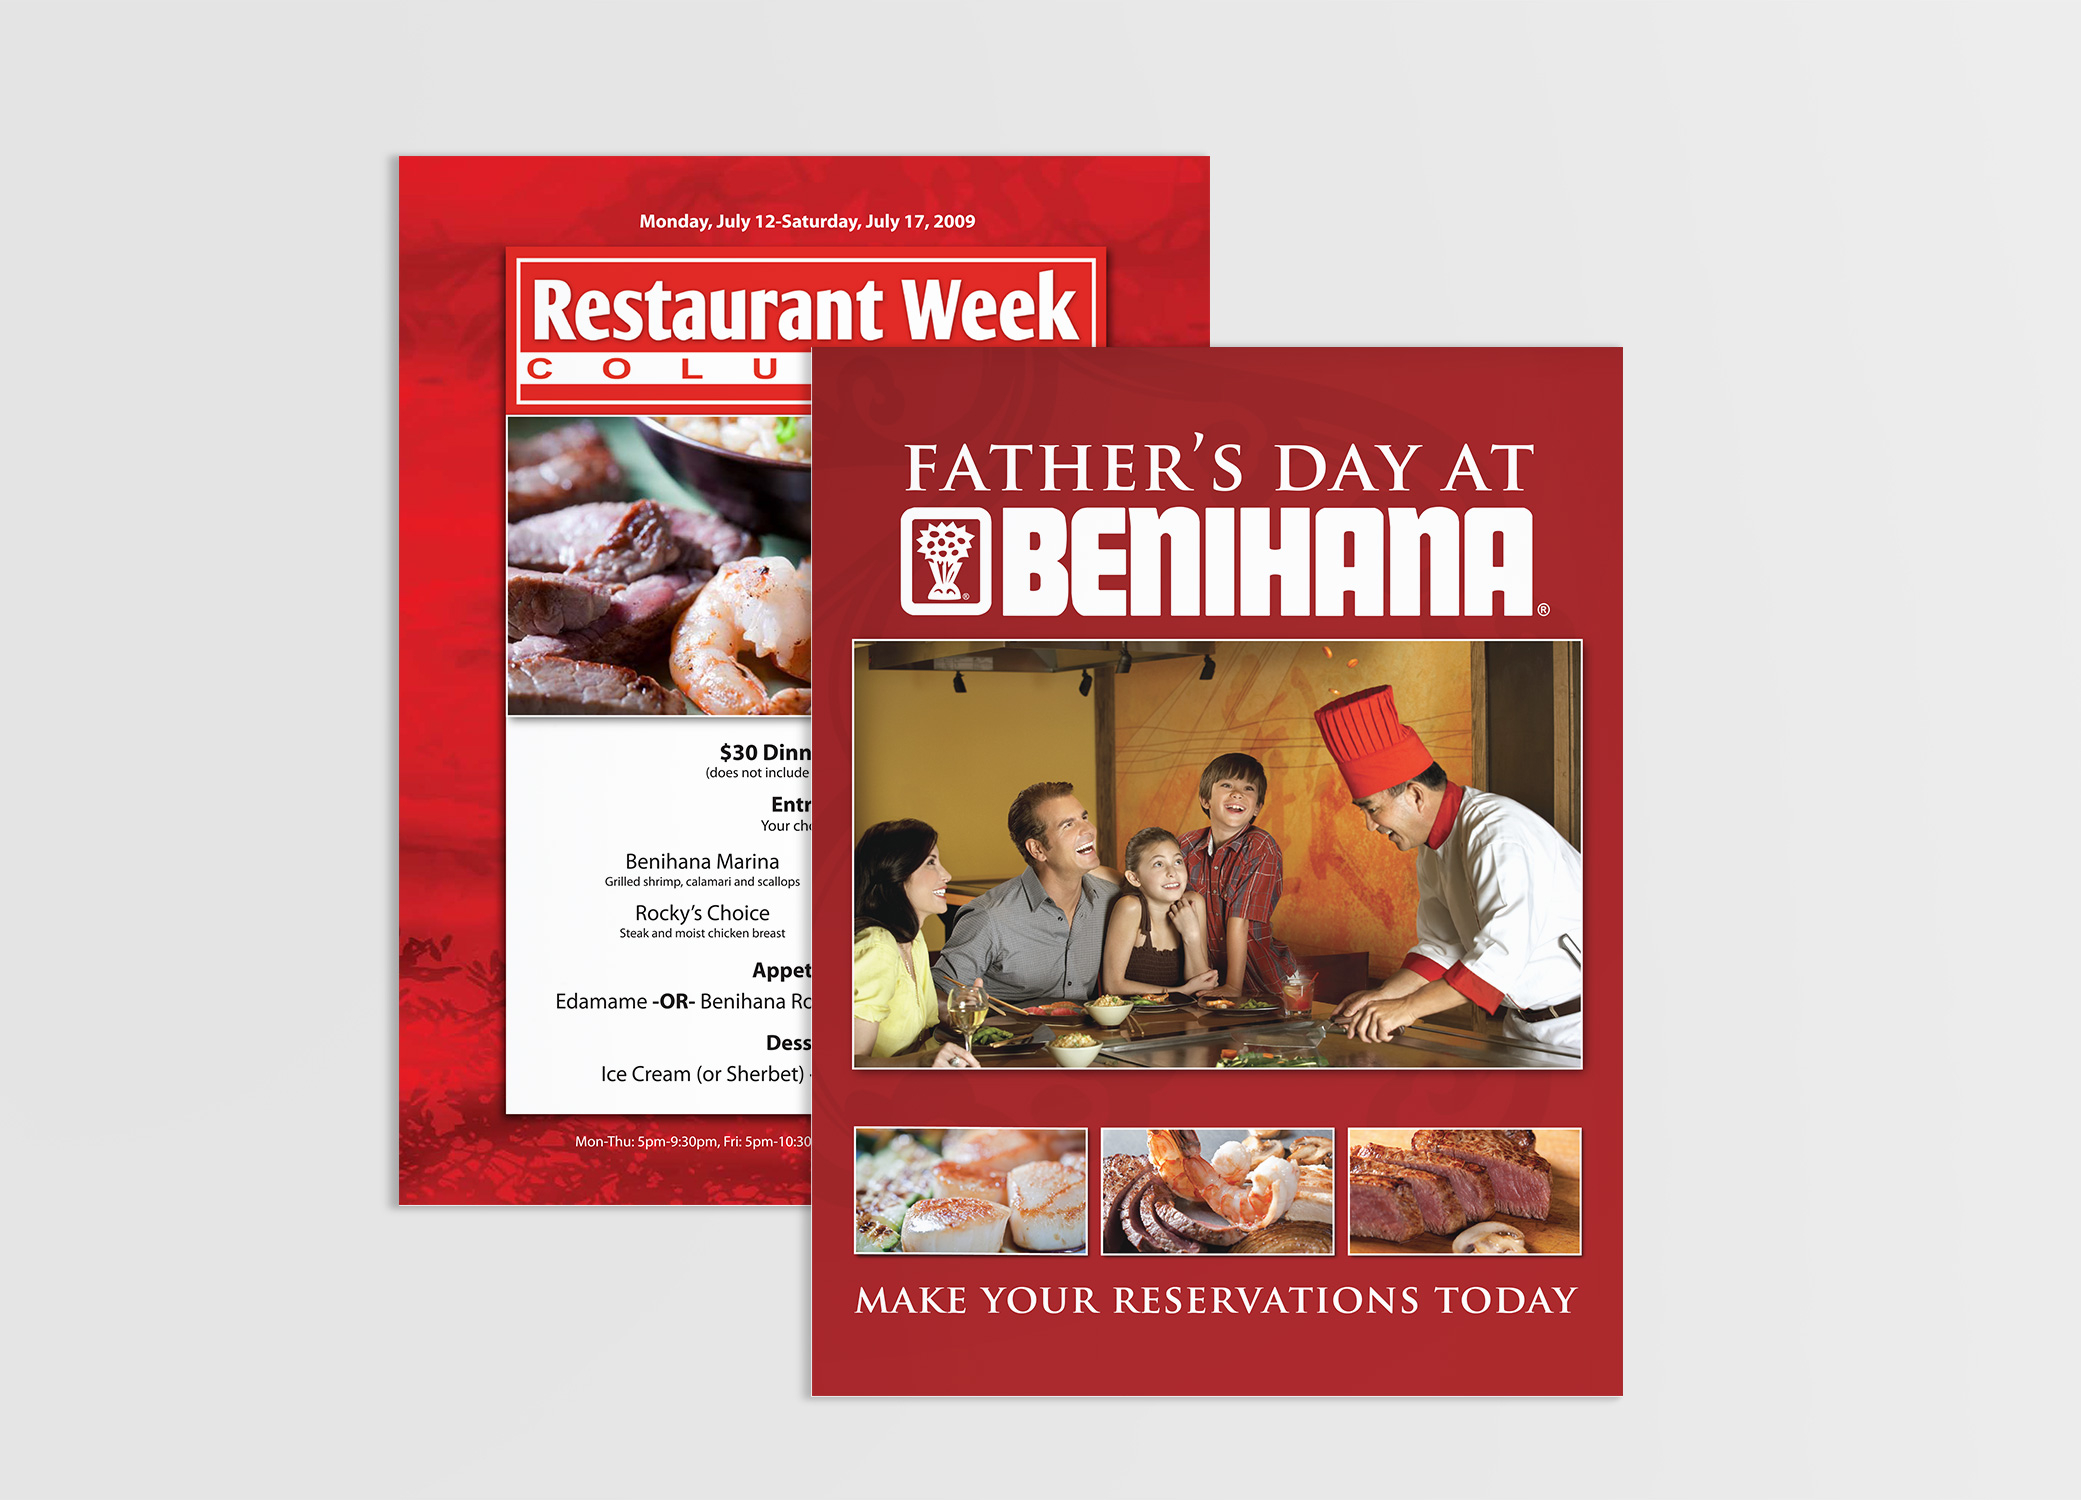 Benihana food brand design promotional posters in red for Father's Day and Restaurant Week.